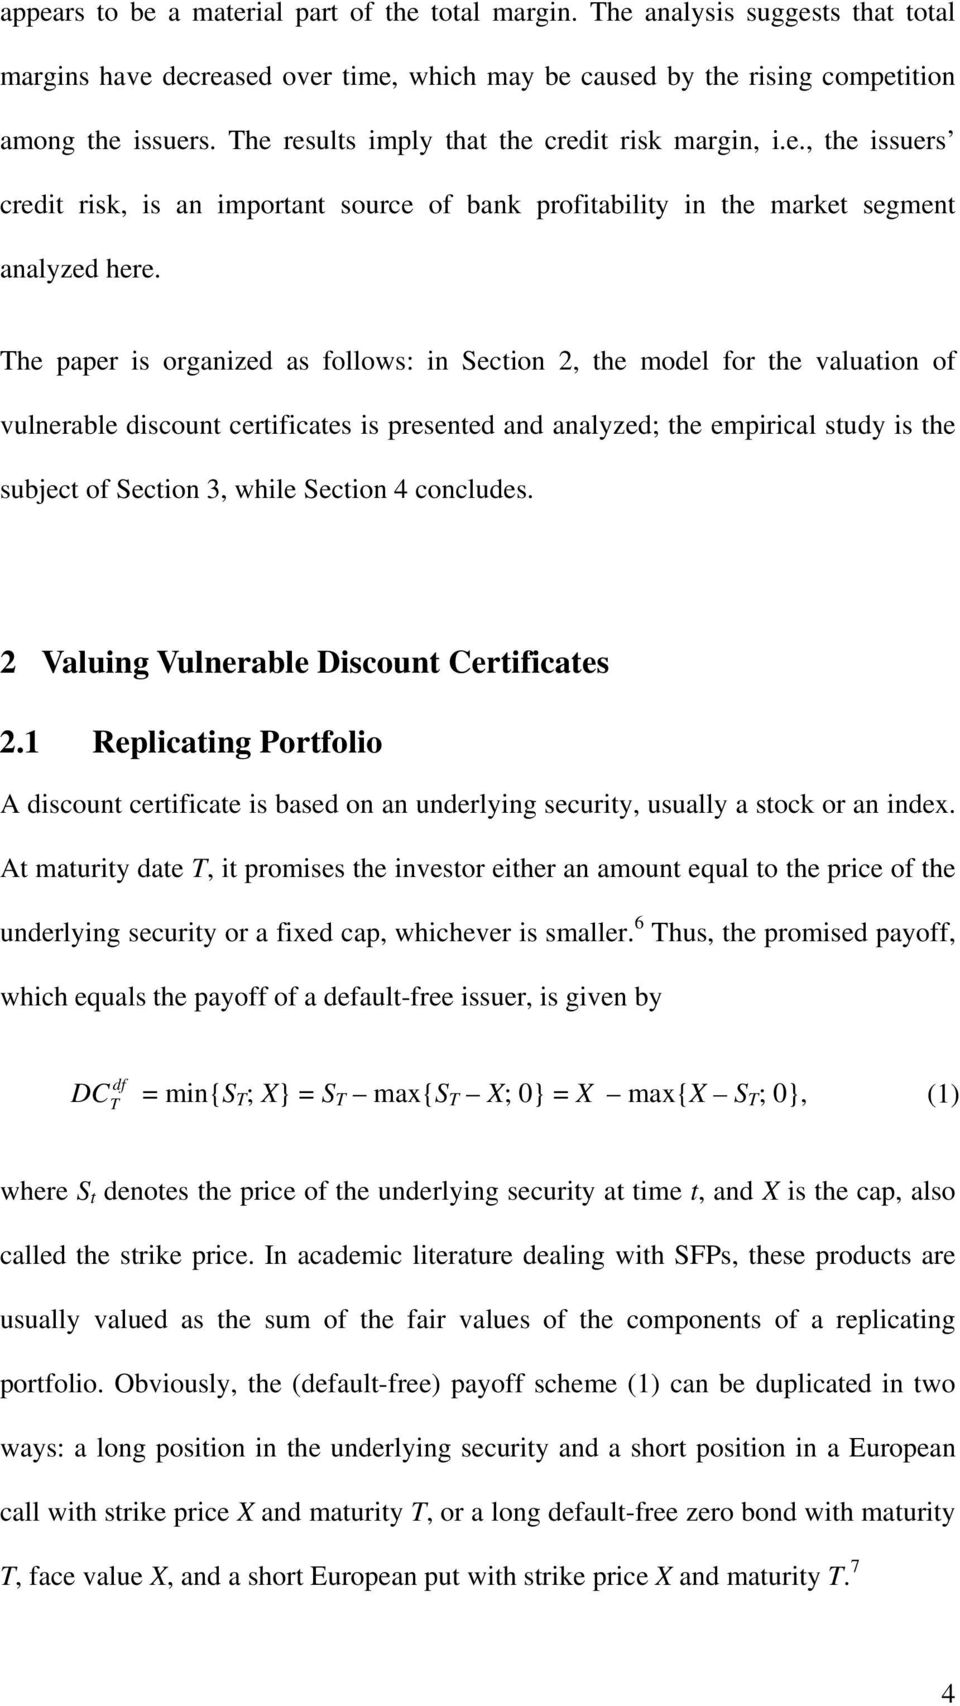 The paper is organized as follows: in Section 2, the model for the valuation of vulnerable discount certificates is presented and analyzed; the empirical study is the subject of Section 3, while